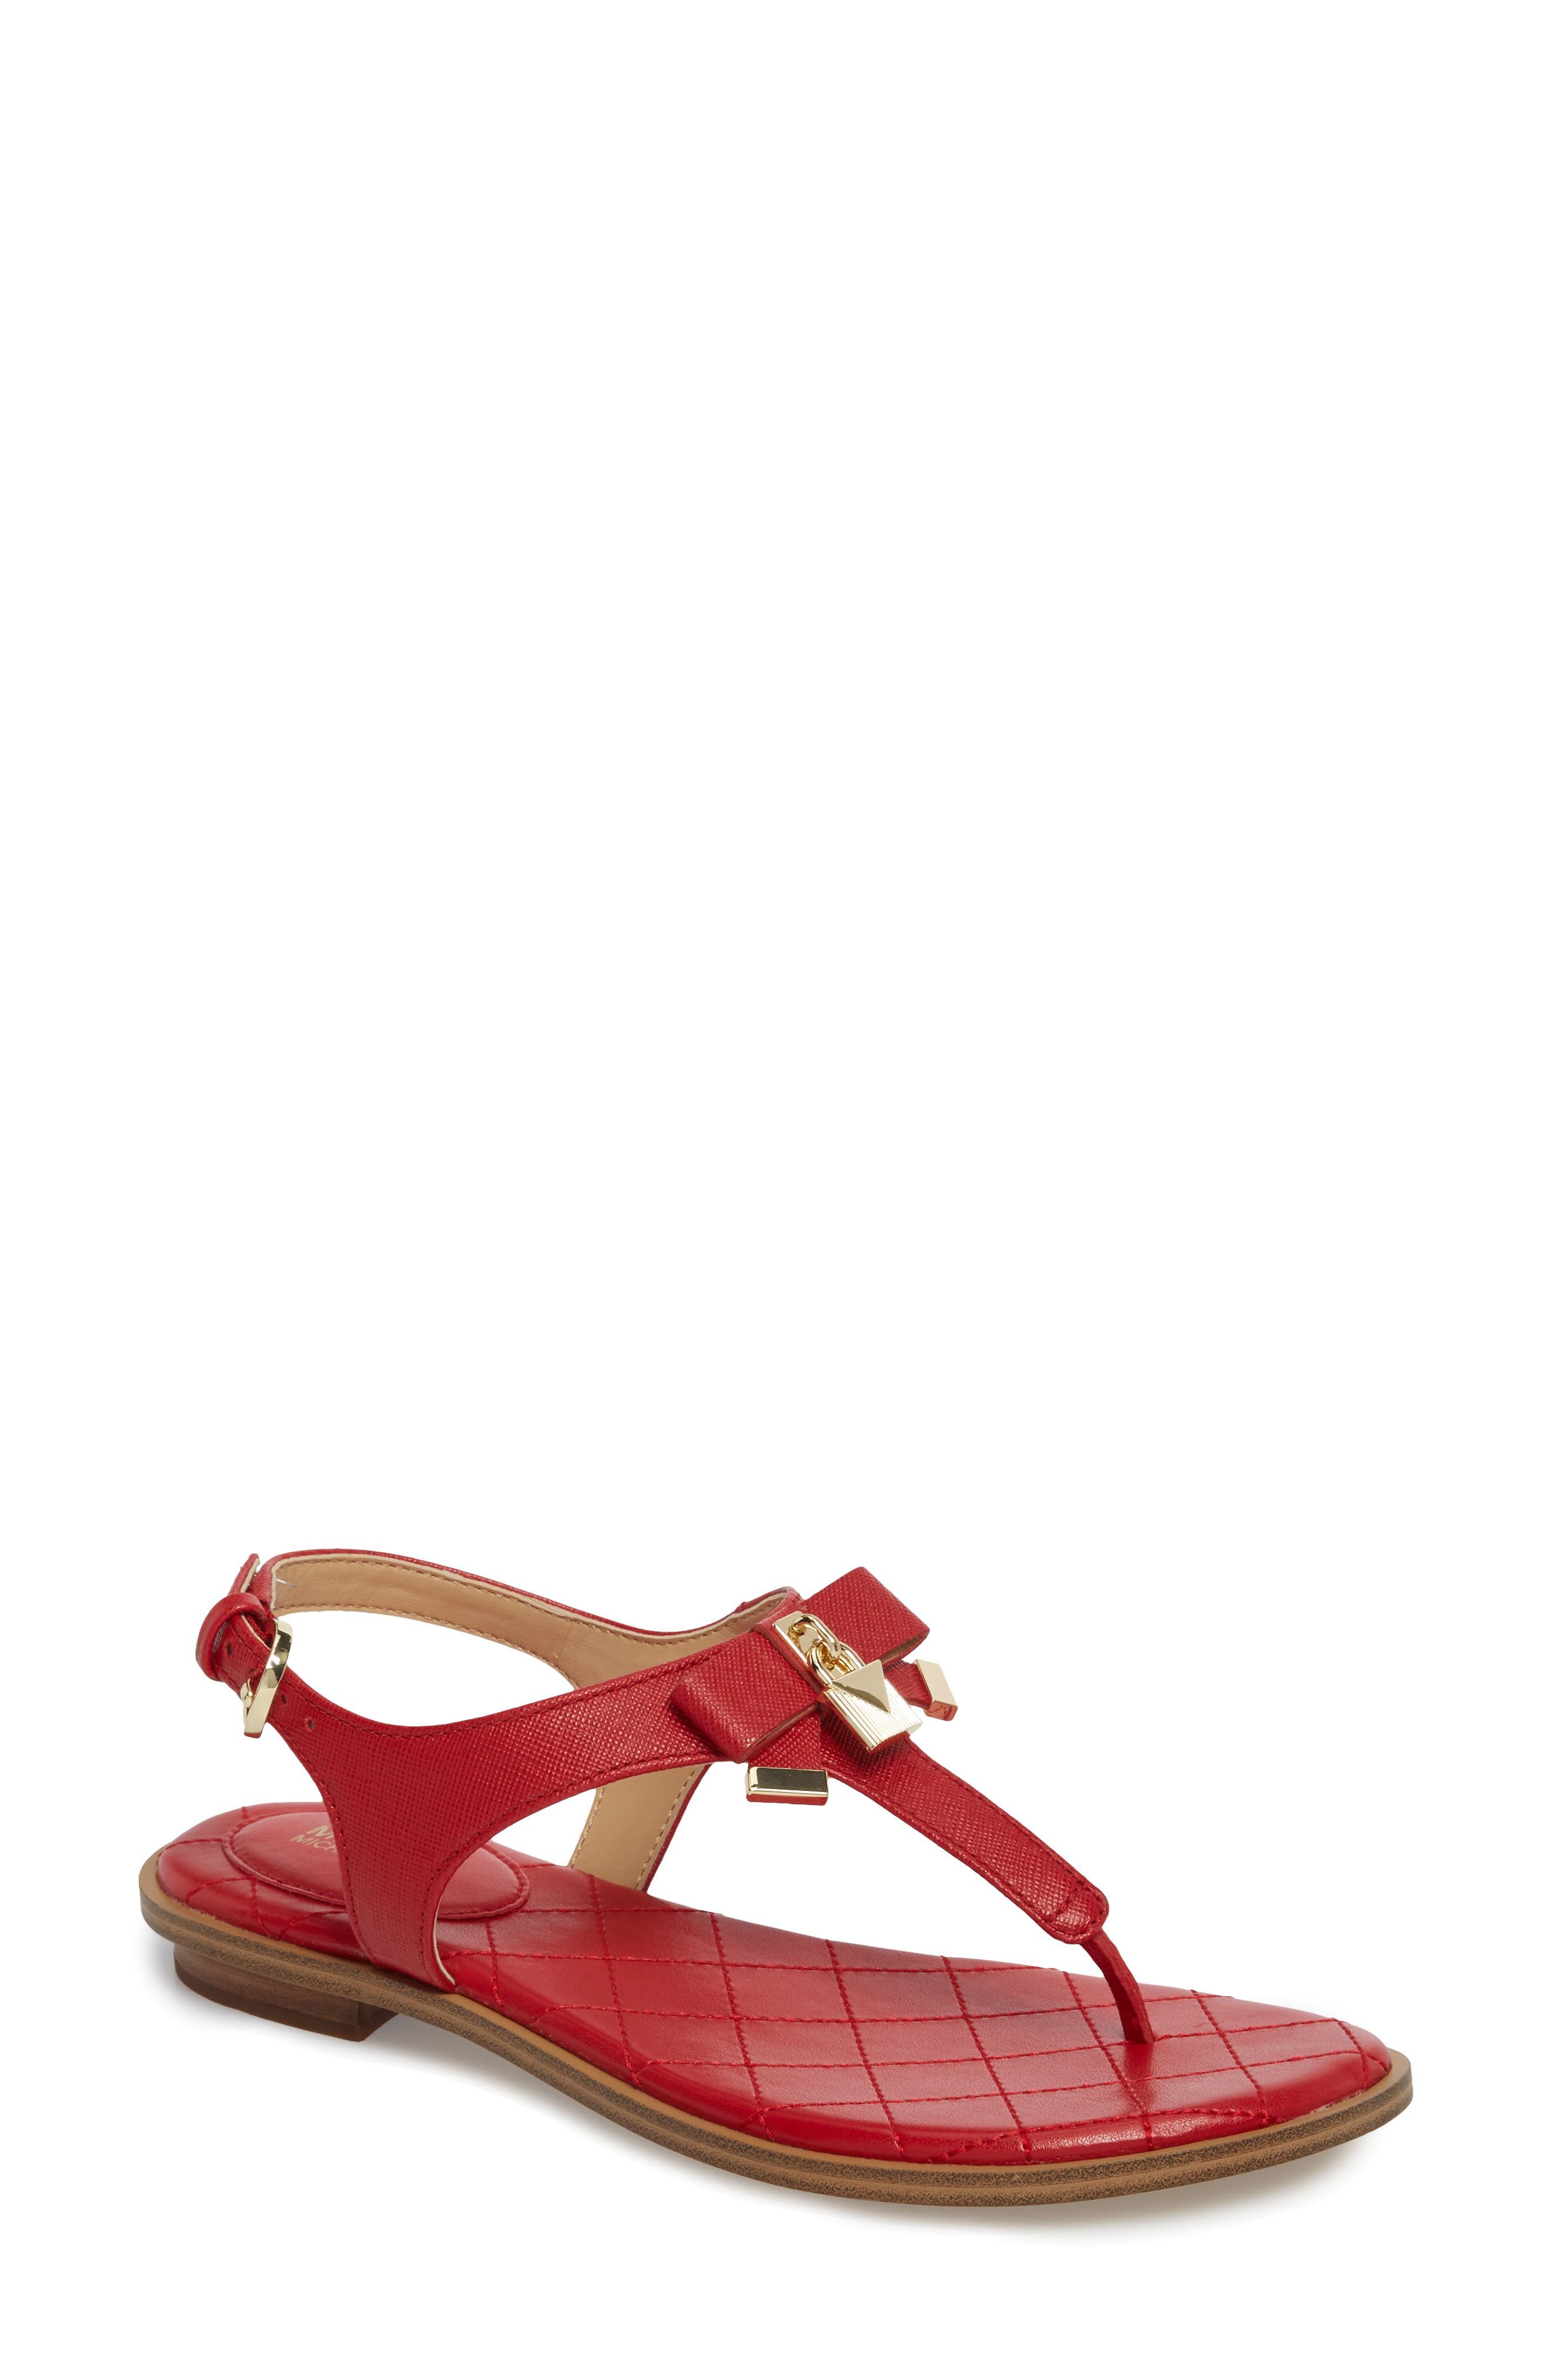 Alice Sandal,                         Main,                         color, Bright Red